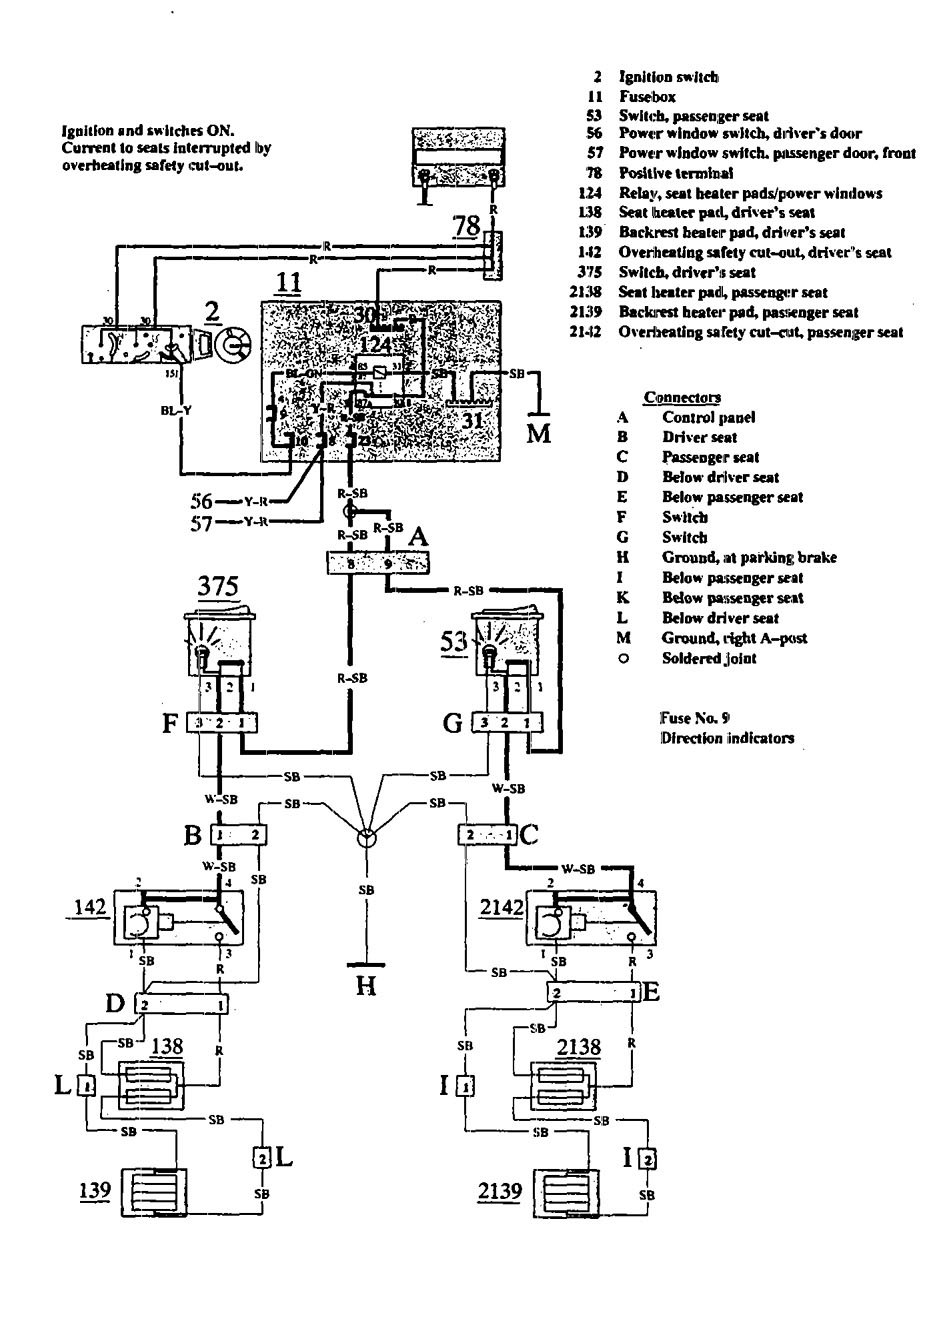 1998 Mazda 626 Engine Diagram Besides Mazda 626 Fuse Box Diagram As